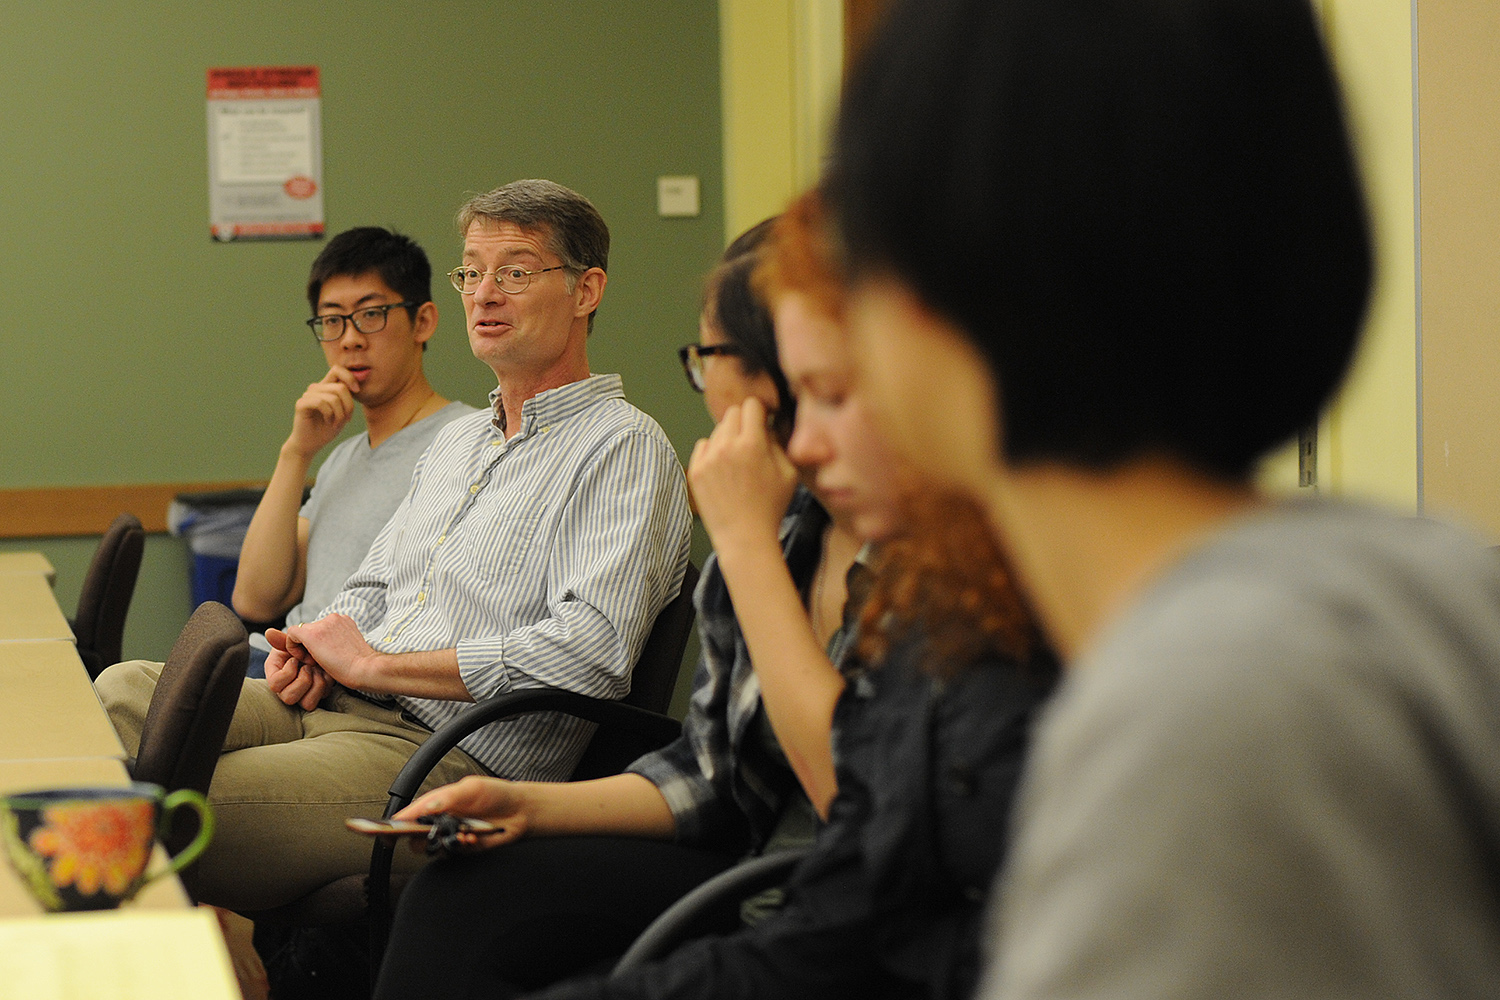 The breakout sessions were discussed in English, Chinese, Japanese and Korean.